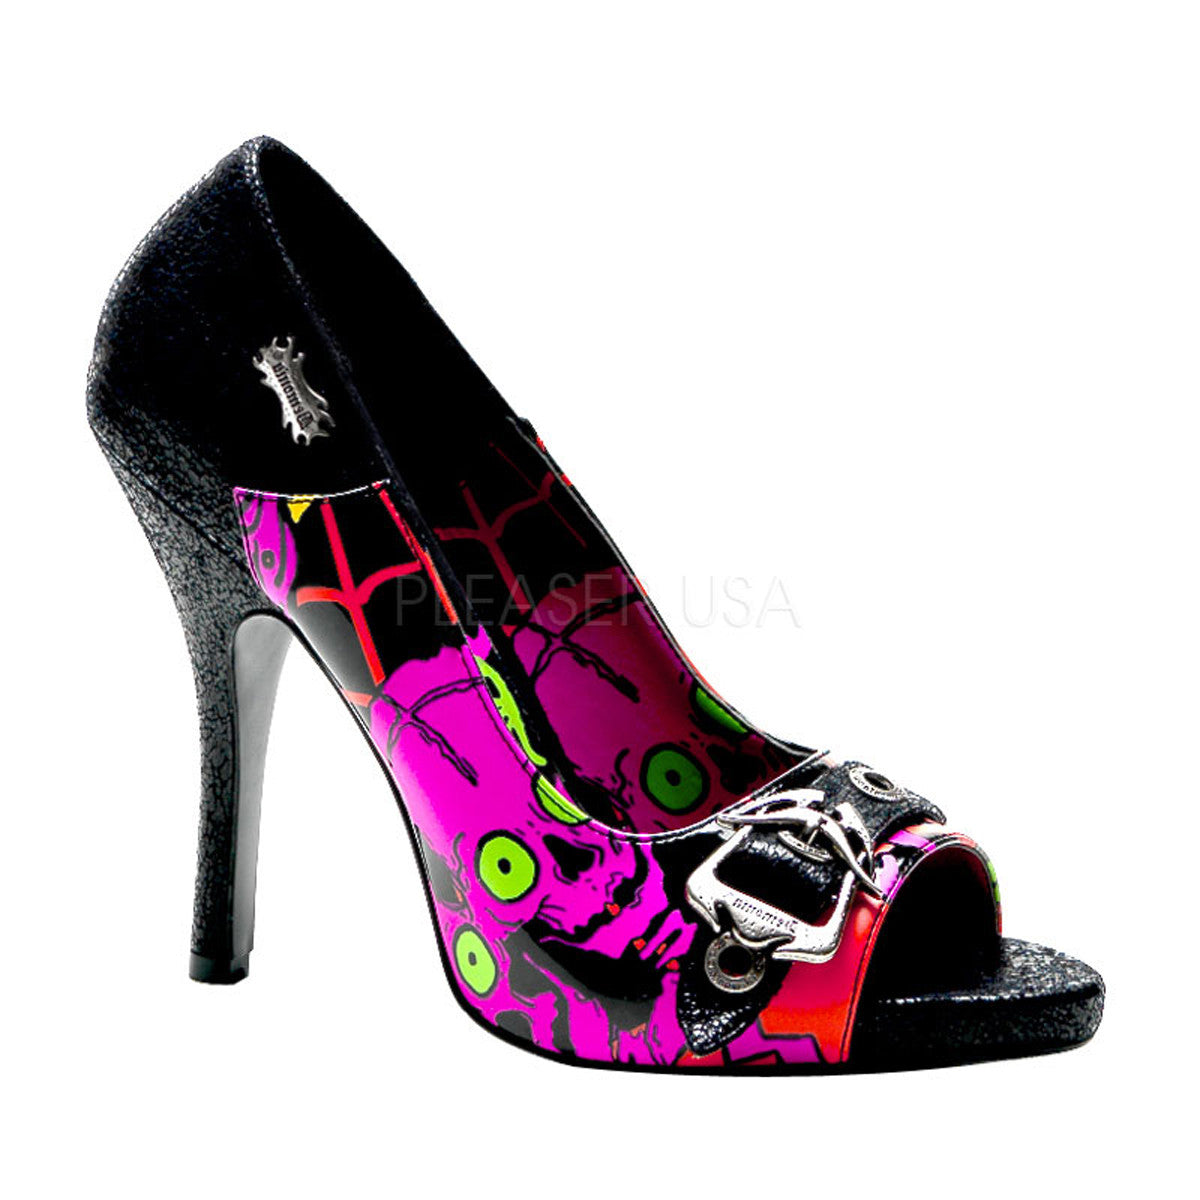 Demonia,DEMONIA ZOMBIE-08 Black Turtle Pu Screen Prints Pumps - Shoecup.com